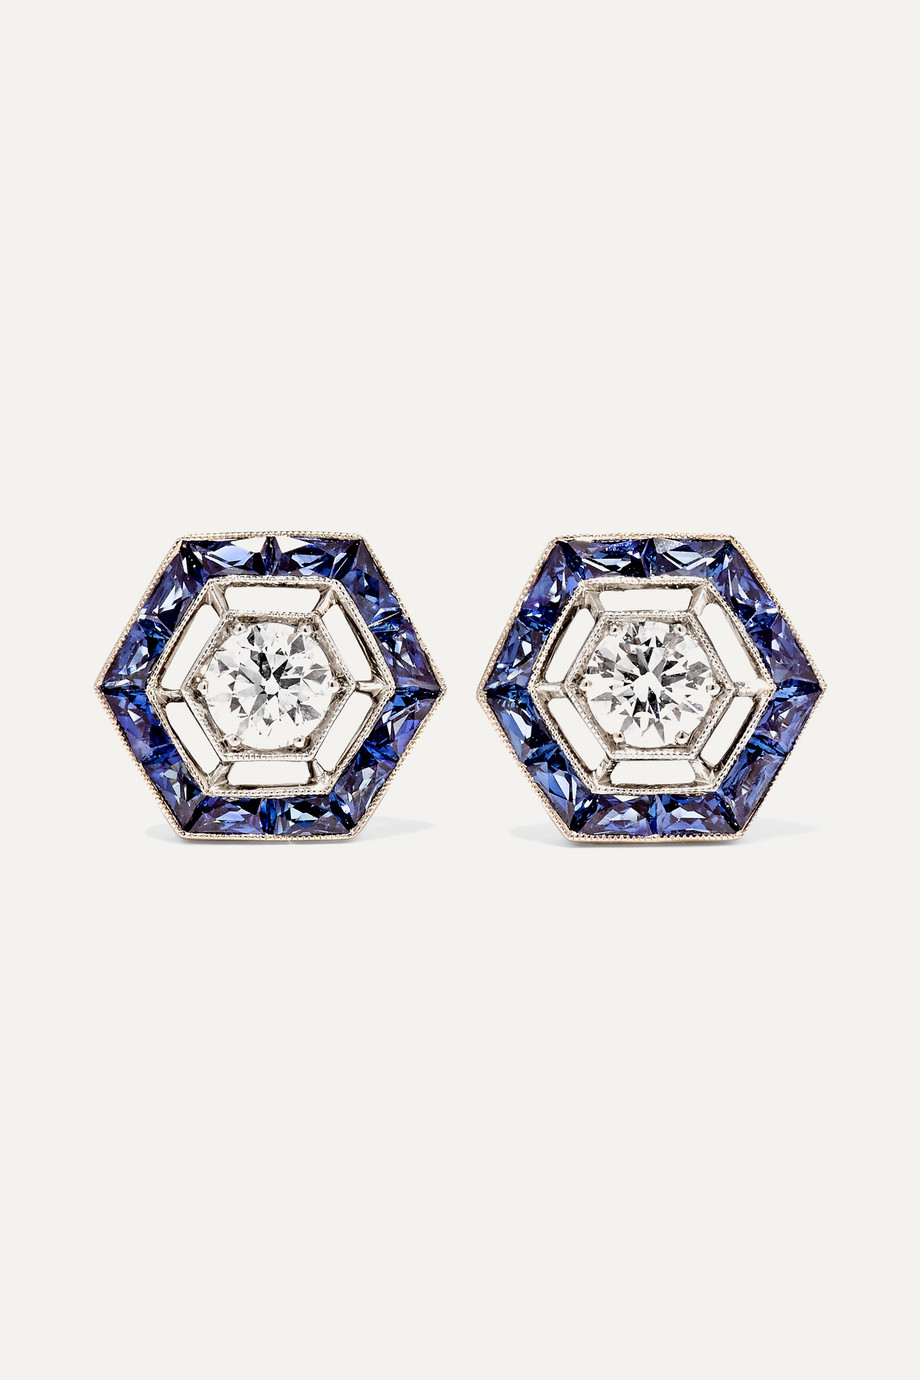 FRED LEIGHTON Collection 18-karat white gold, sapphire and diamond earrings